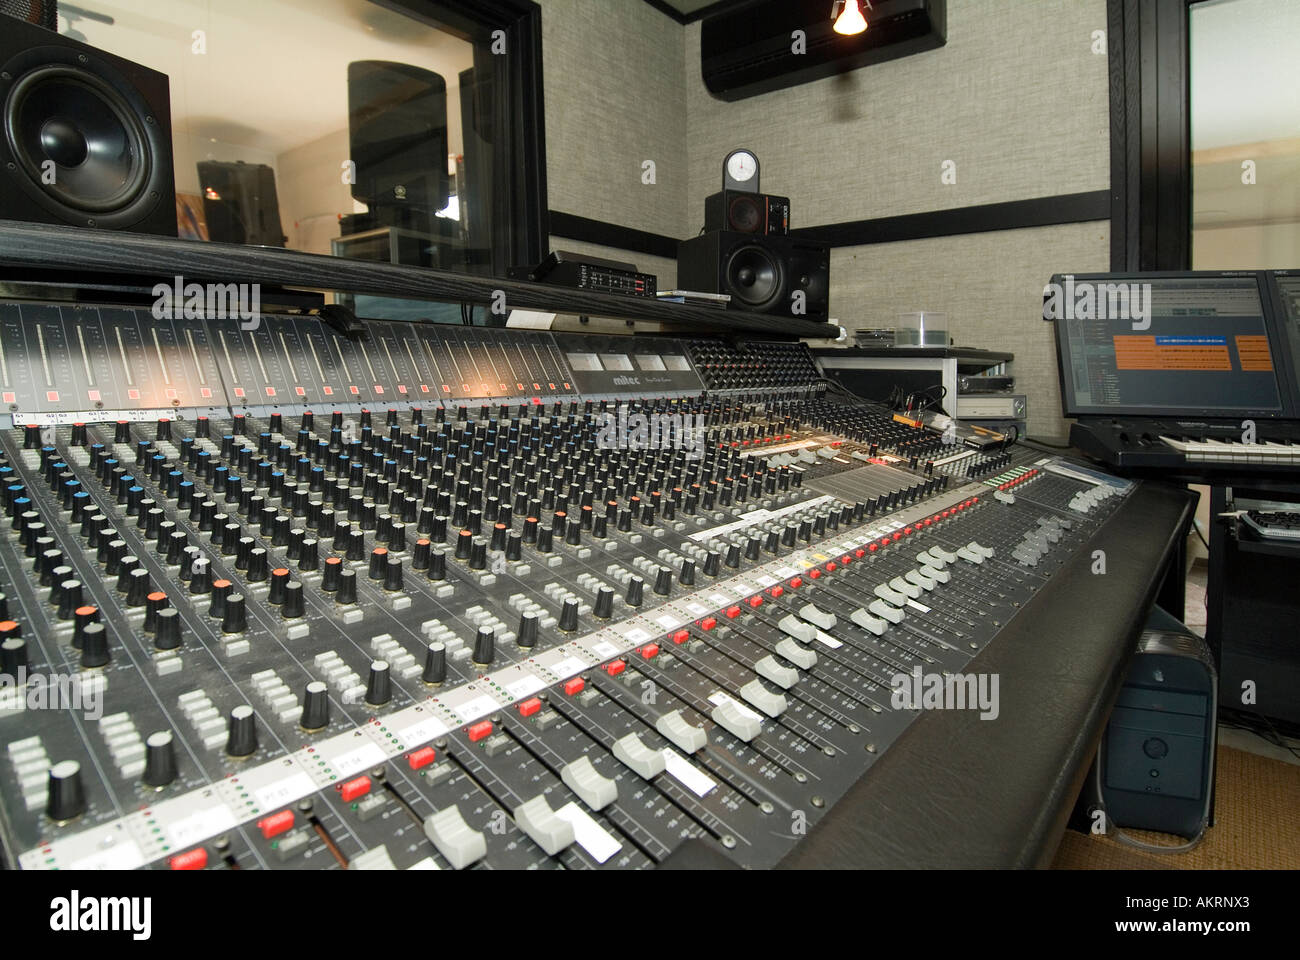 working in recording studio mixer unit in a studio stock photo royalty free image 8607586 alamy. Black Bedroom Furniture Sets. Home Design Ideas